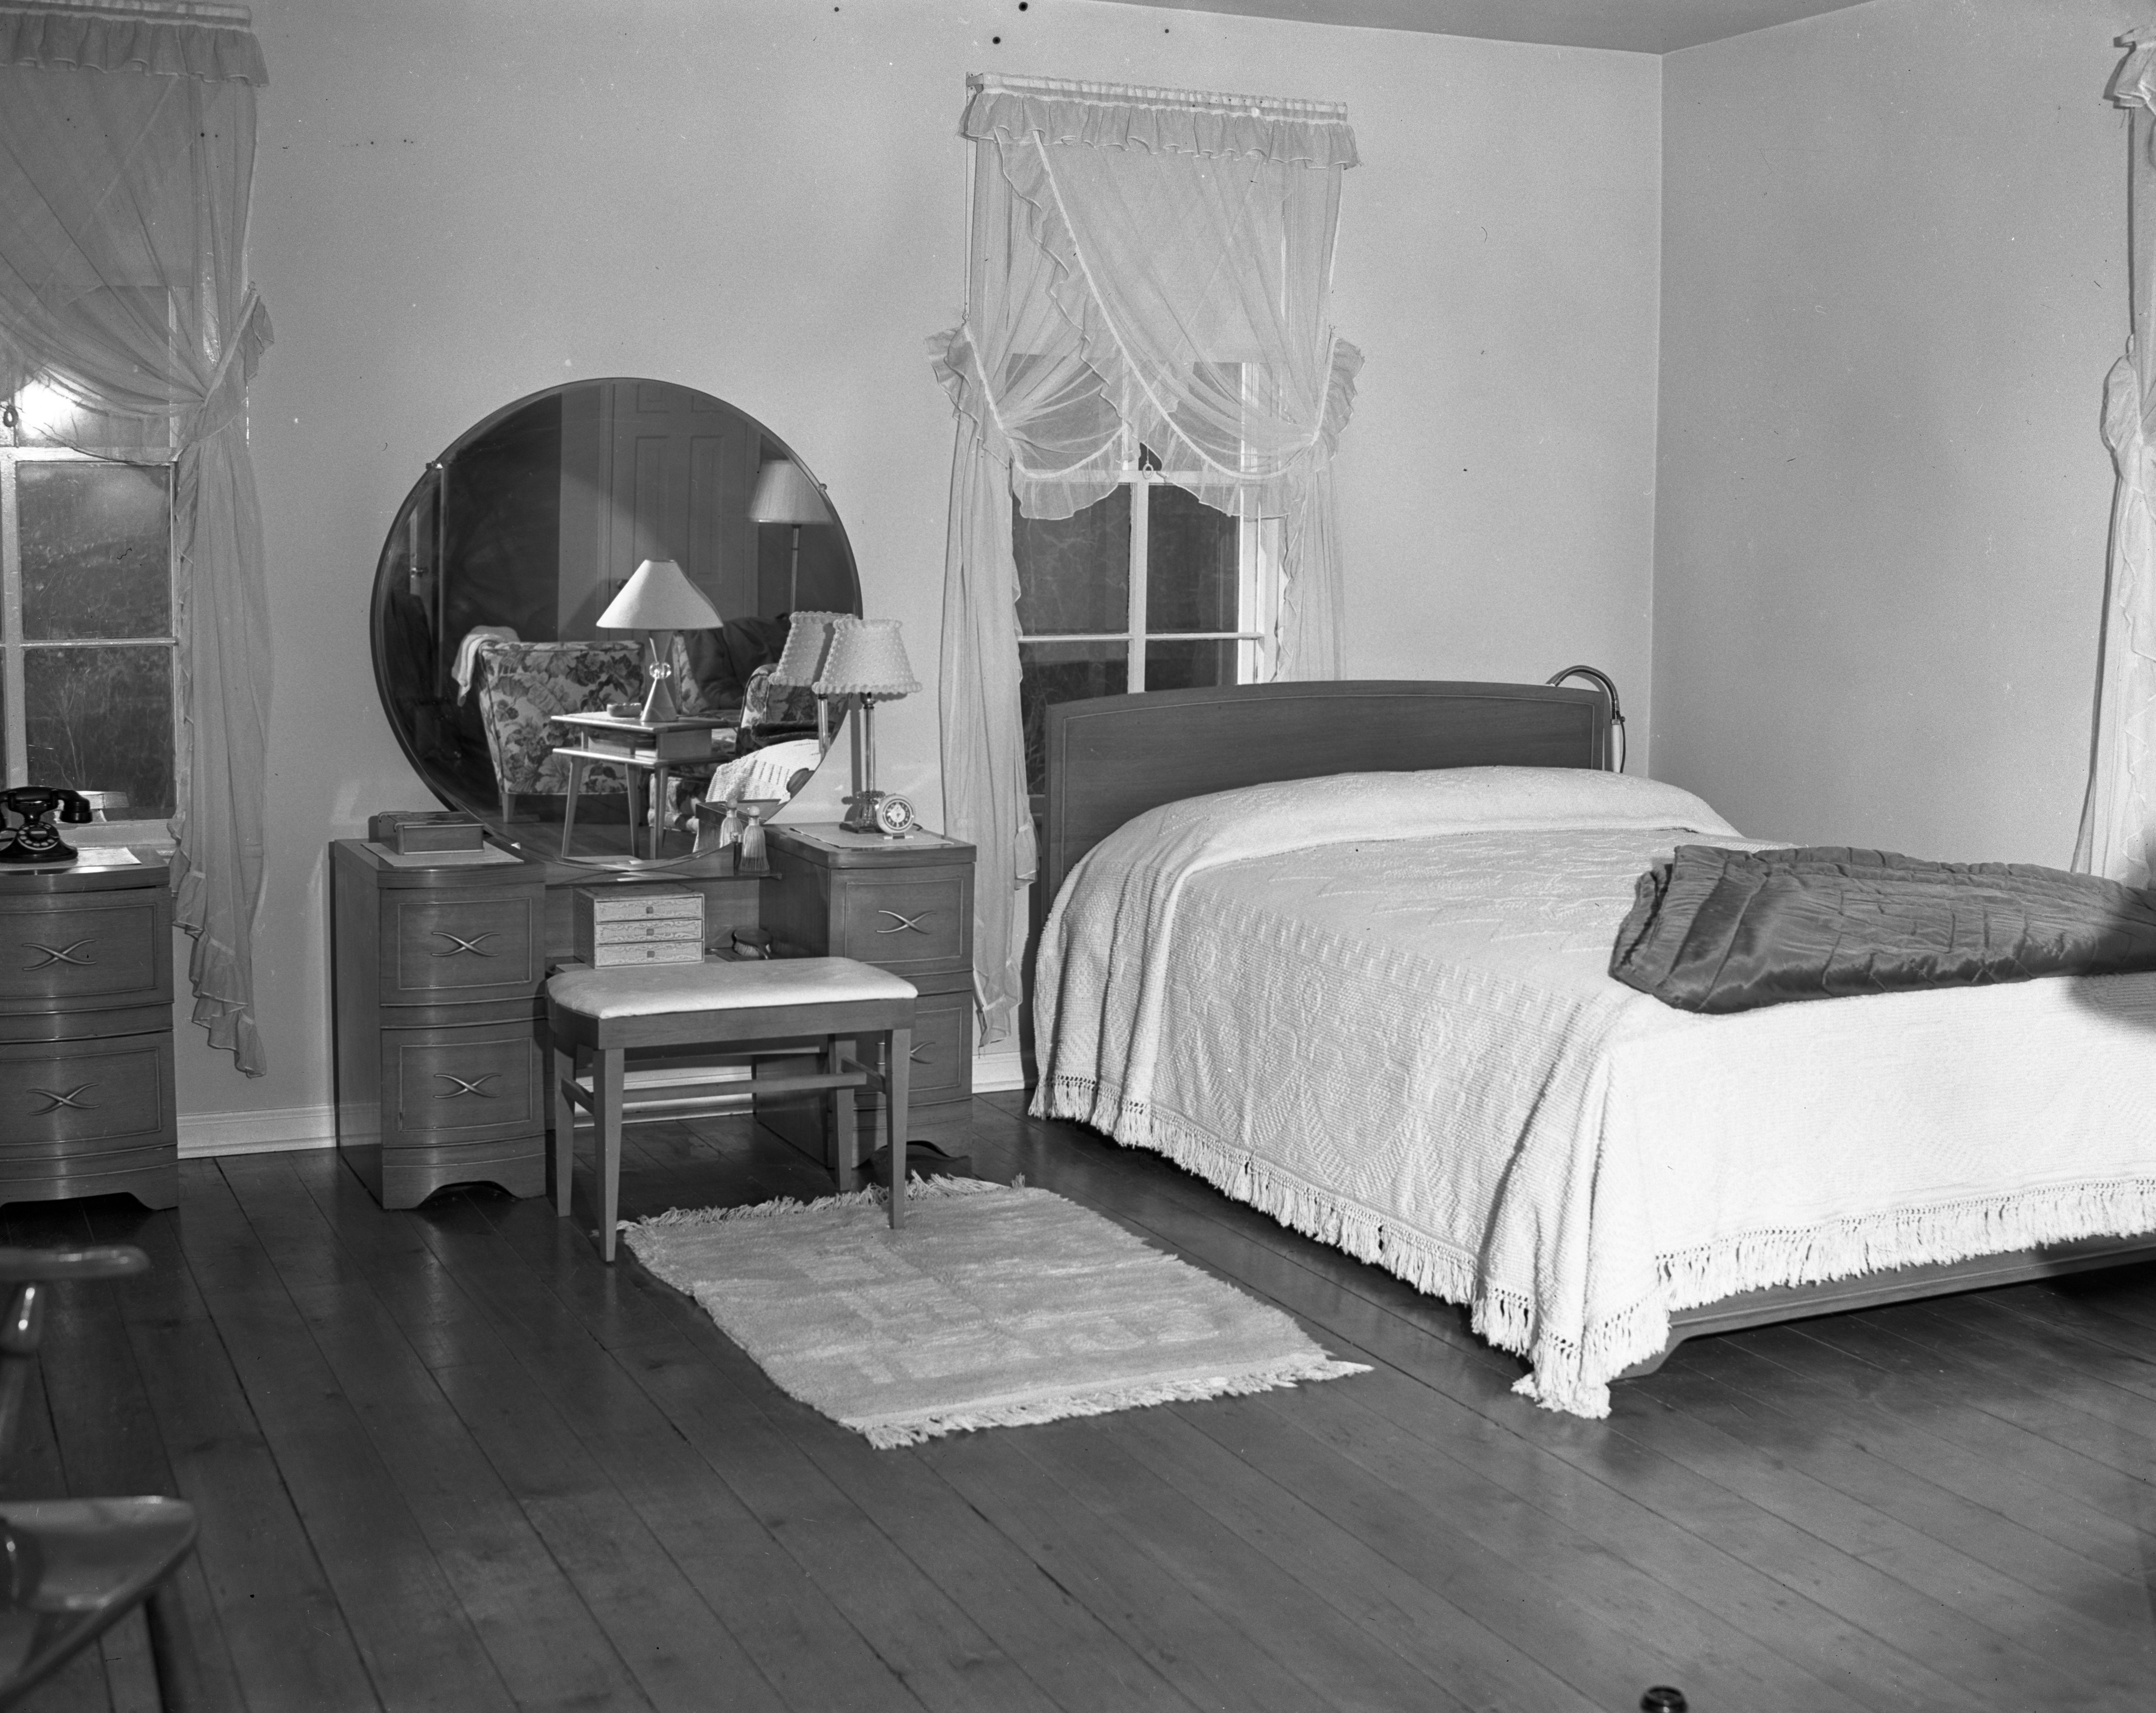 Bedroom of 5th Ward Voting Building, home for a WWII veteran, November 1946 image